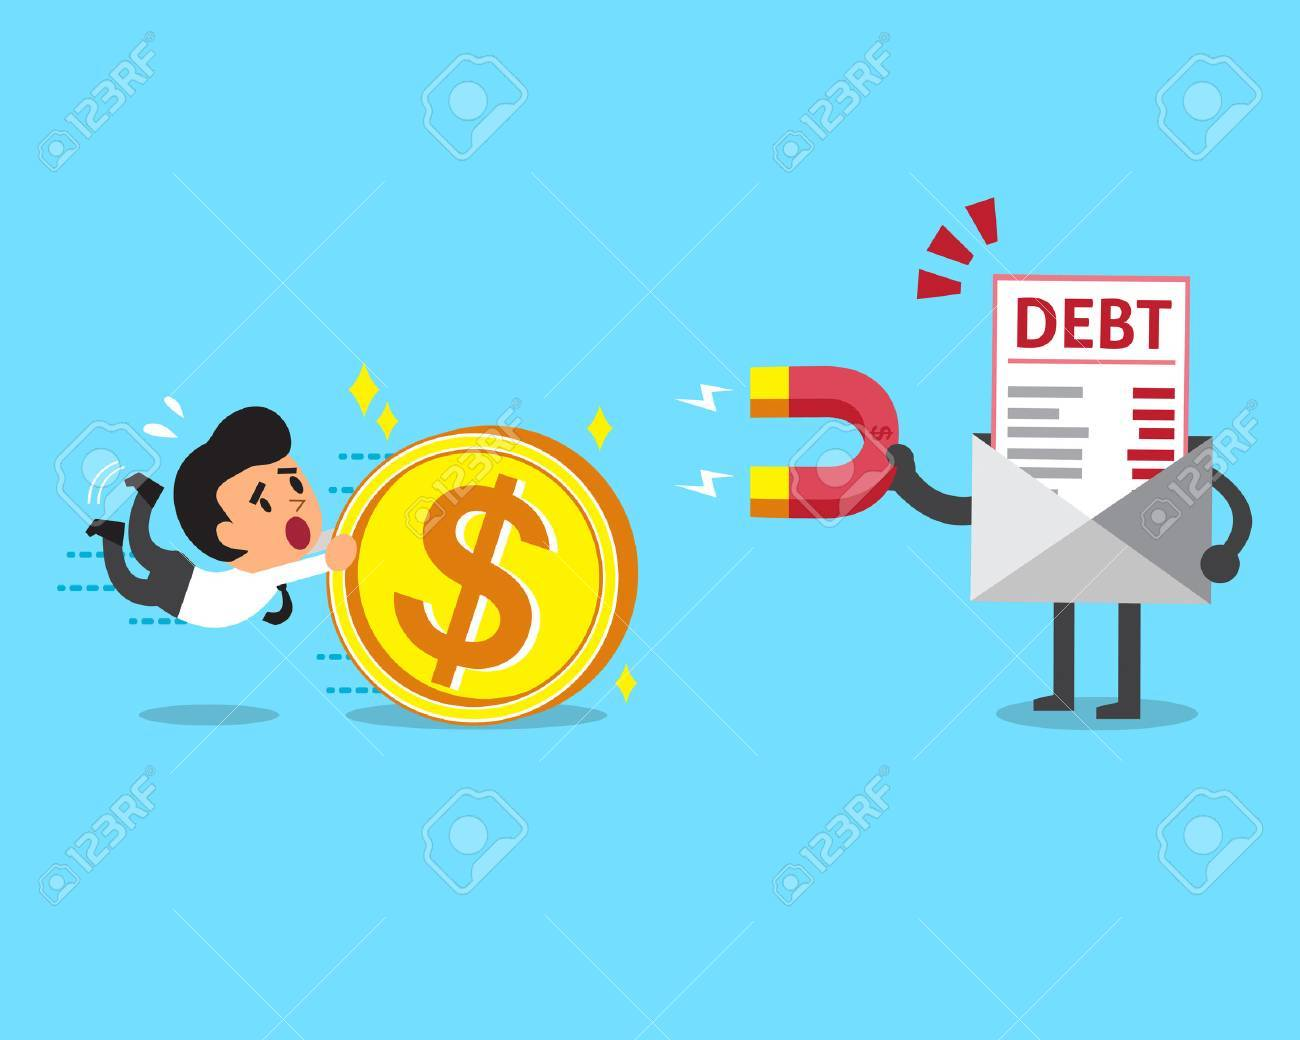 Business concept debt letter using a magnet to attracts money from a businessman - 46350944